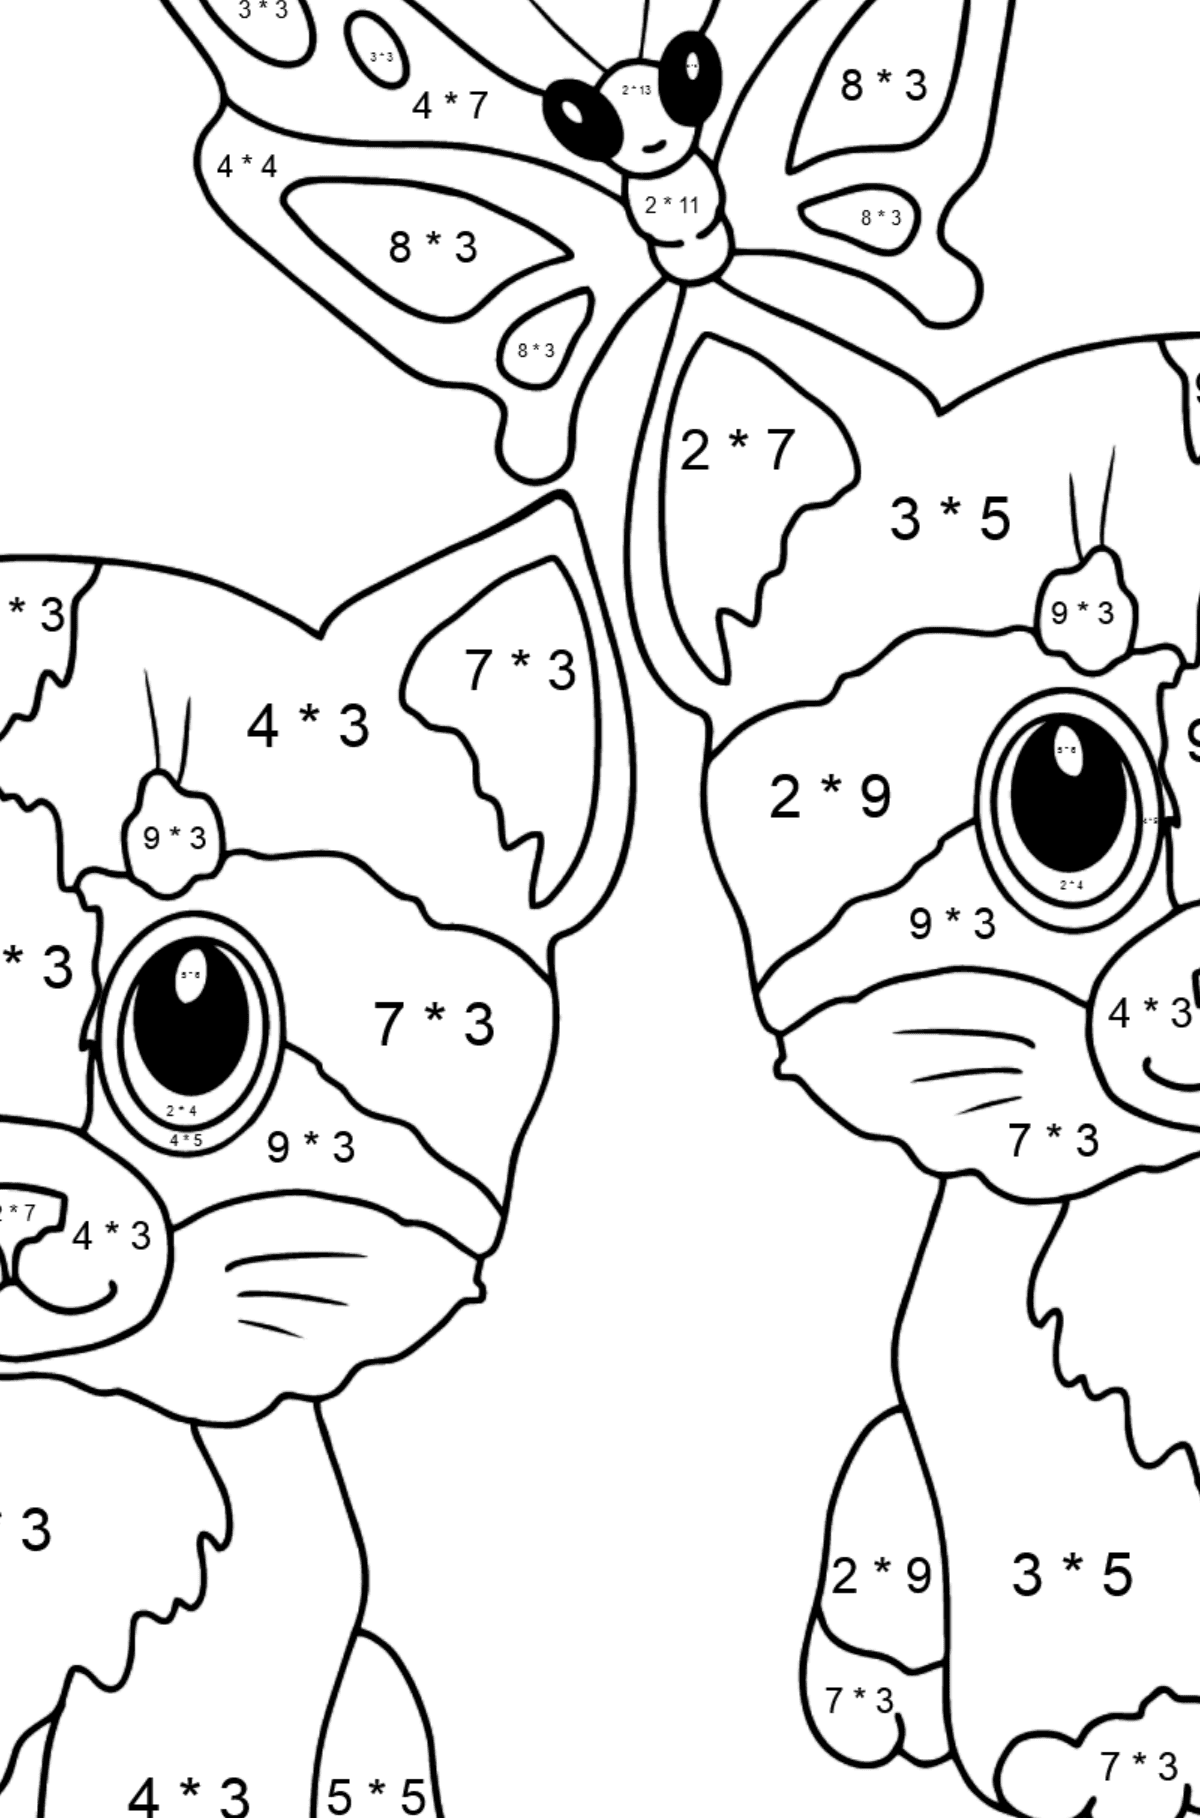 Coloring Page - Kittens are Playing Happily with a Butterfly  - Math Coloring - Multiplication for Kids